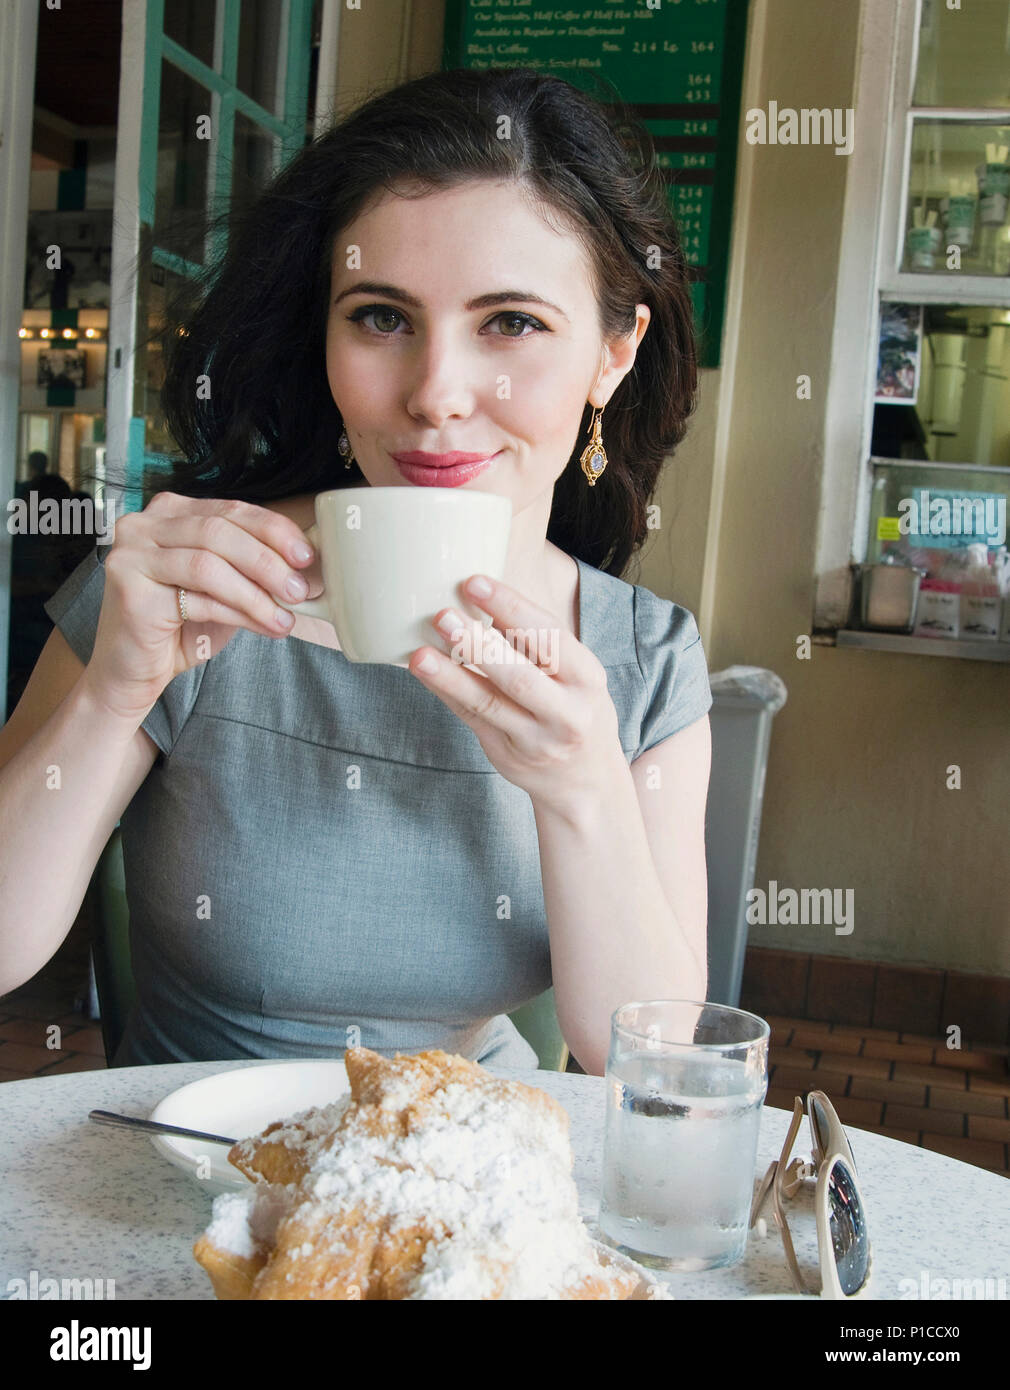 A woman eating a beignet and drinking coffee at Cafe du Monde in New Orleans, Louisiana - Stock Image